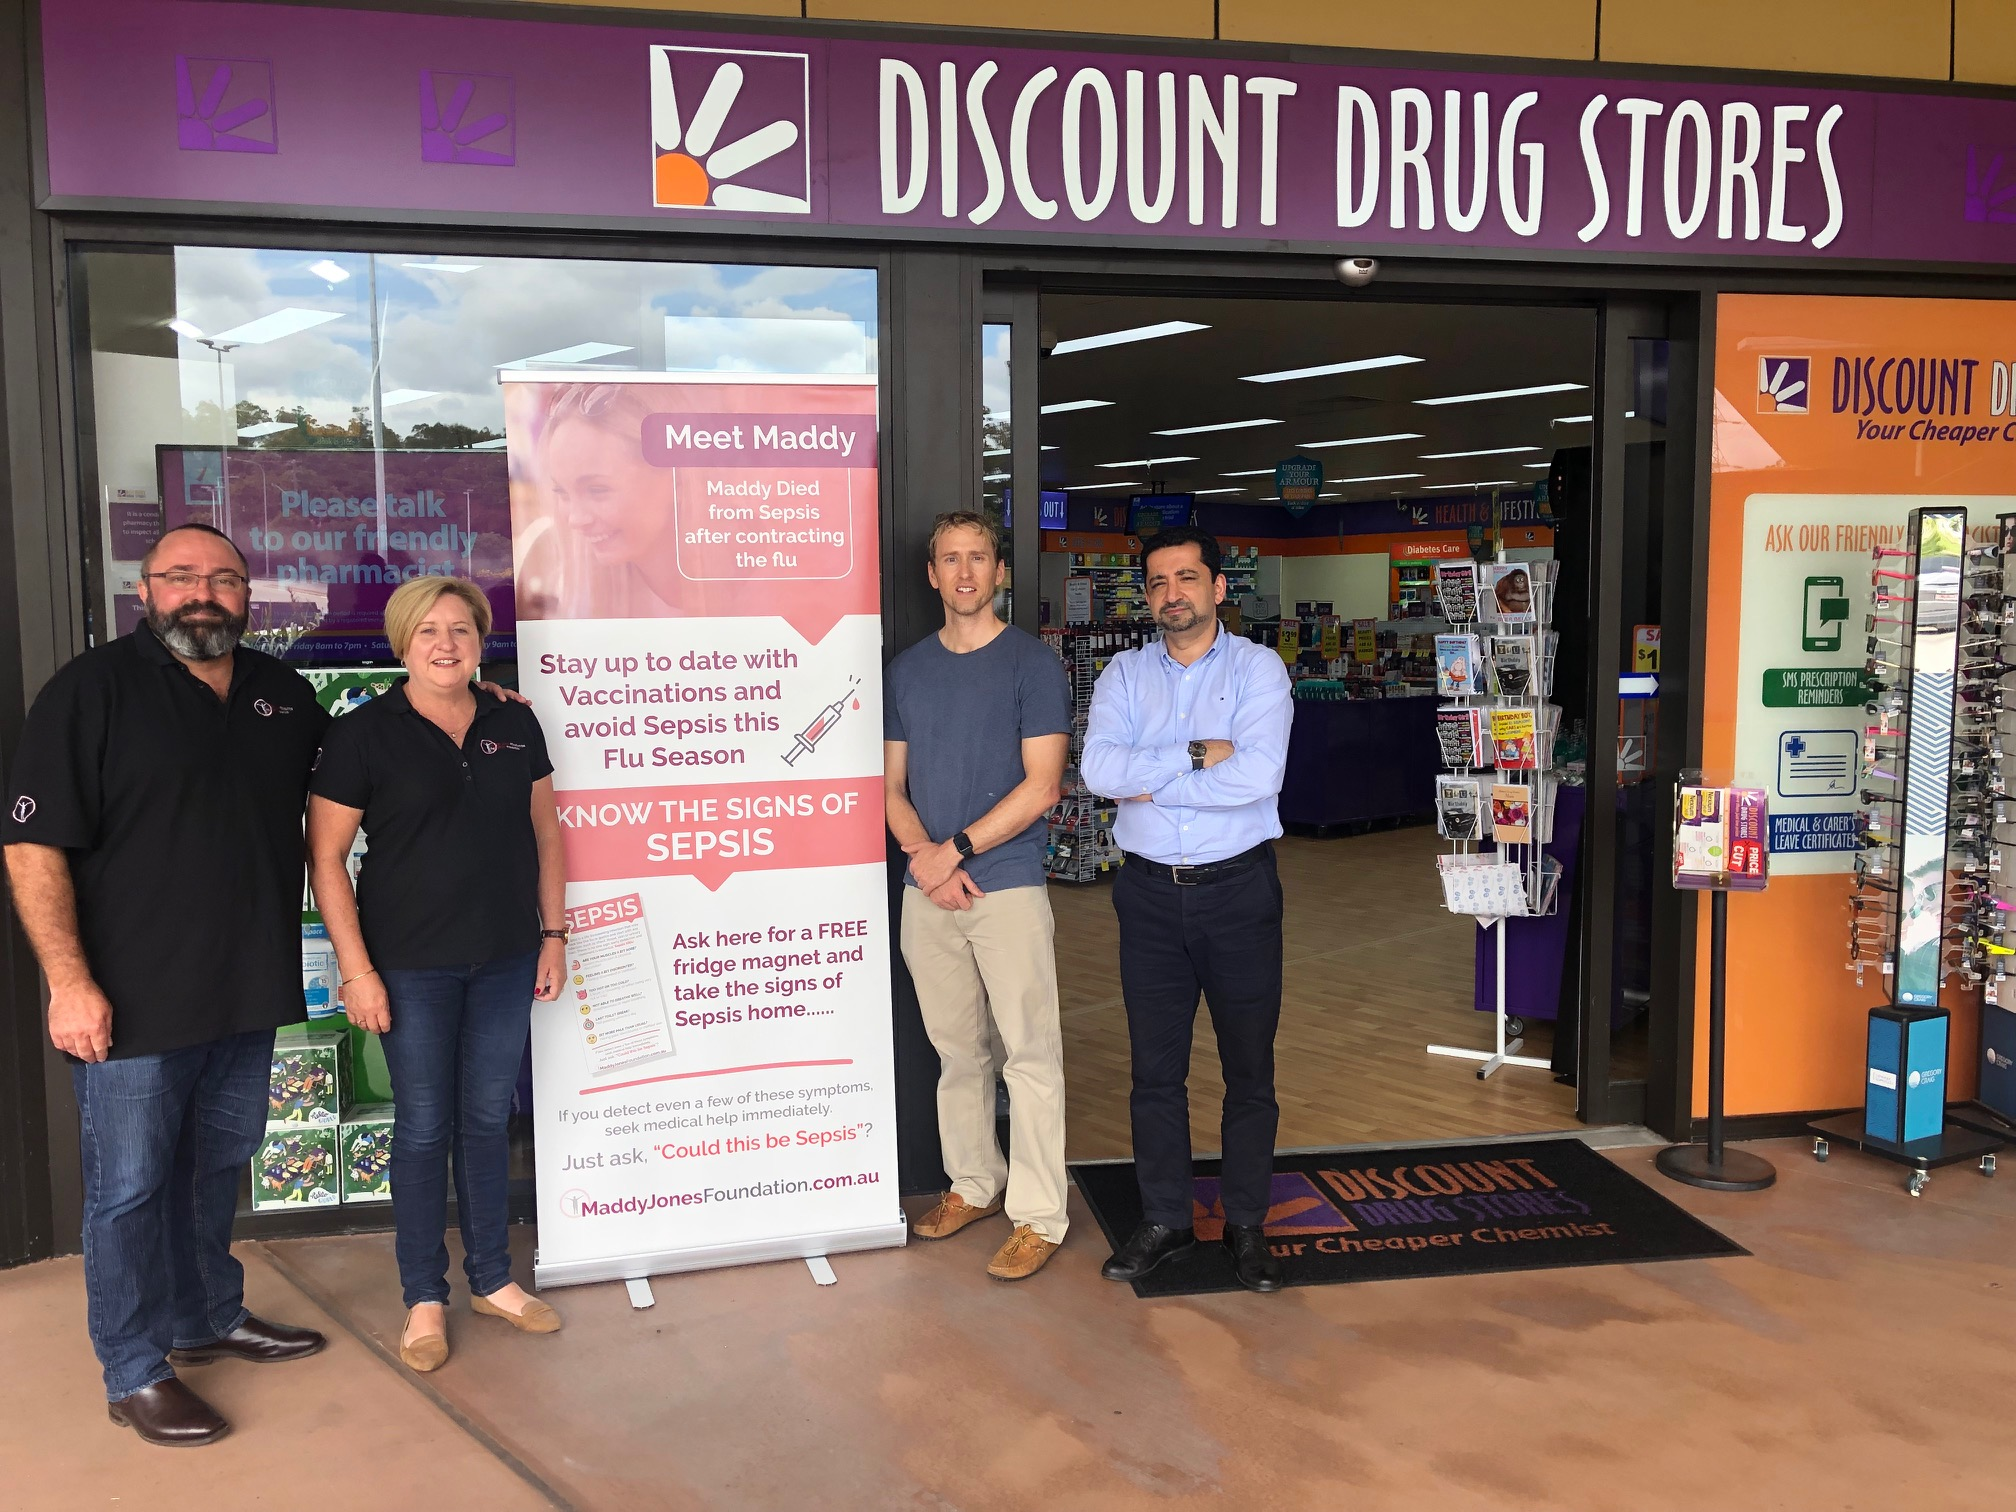 Eatons Hill Discount Drug Store